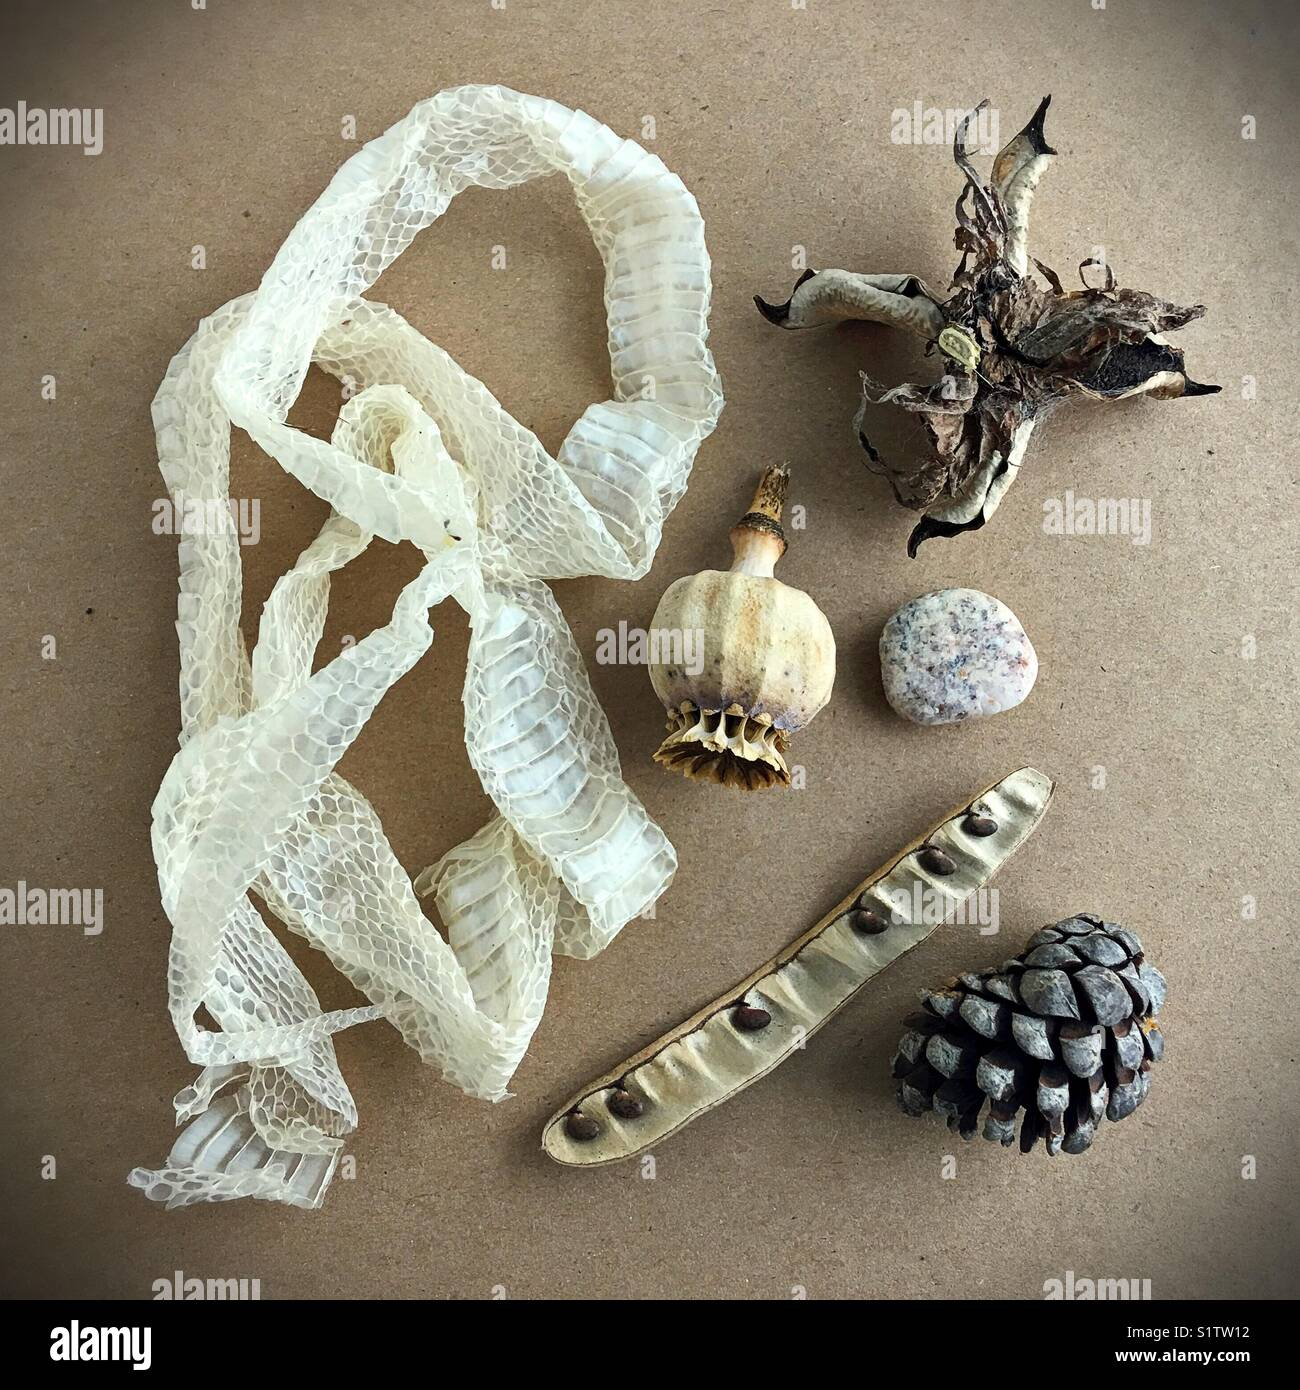 A still life of objects from nature. - Stock Image